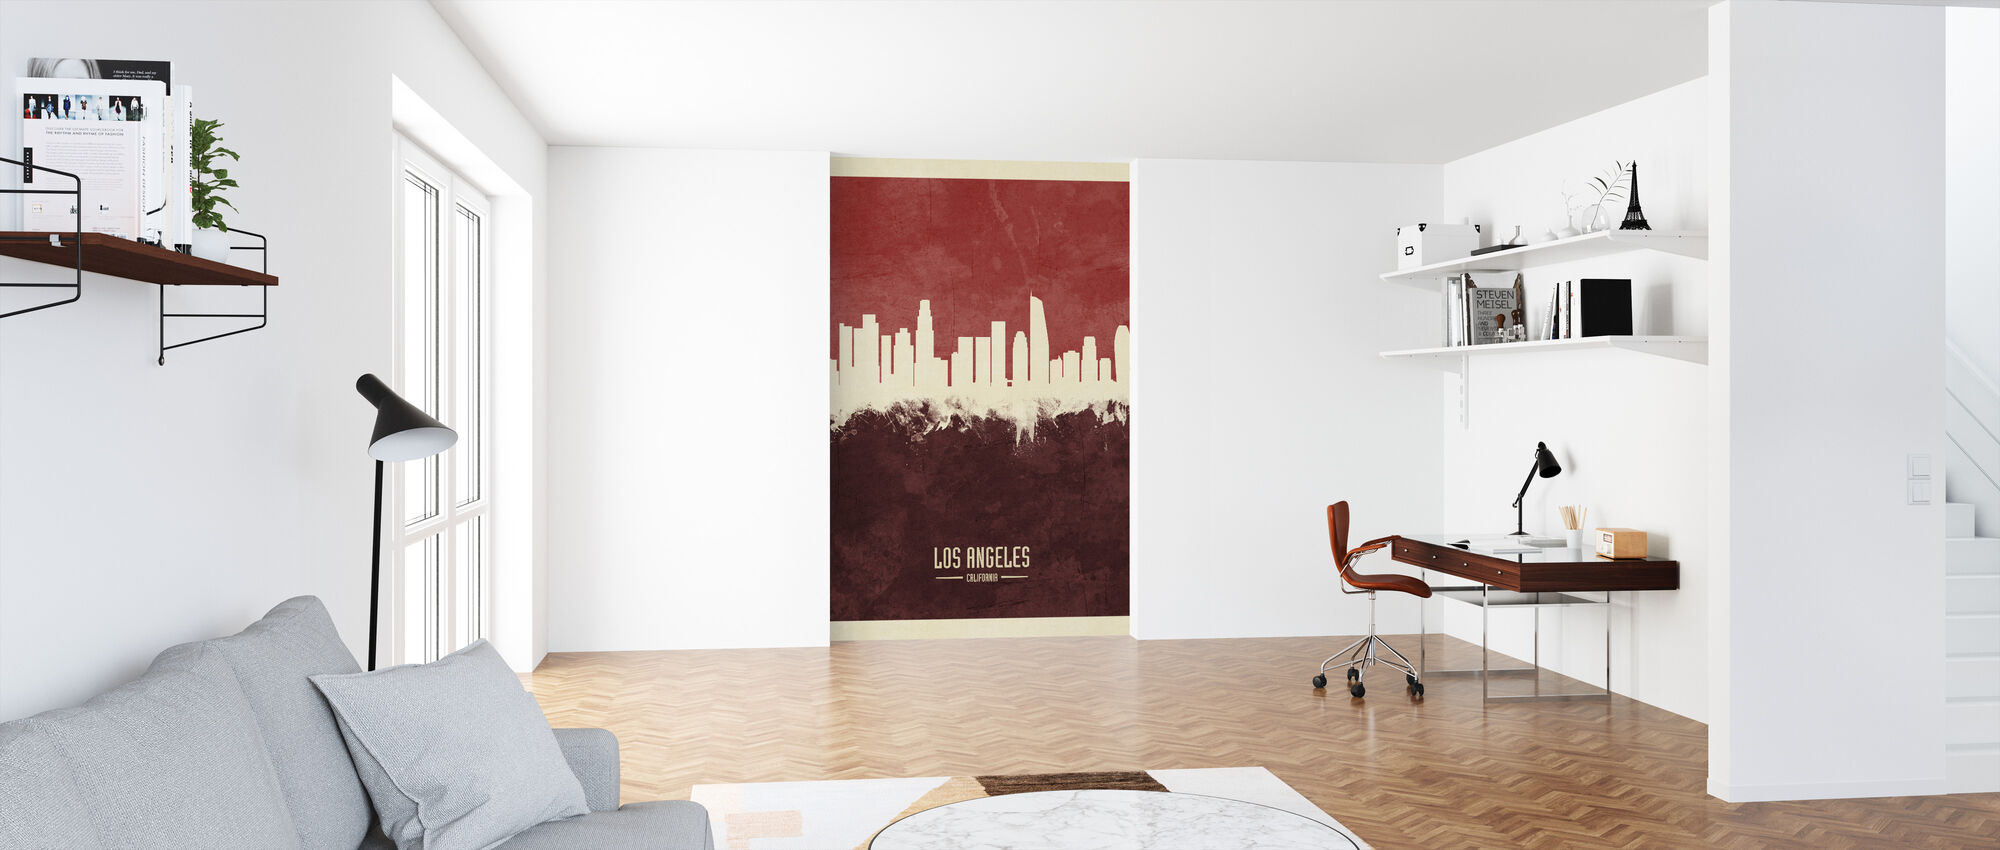 Los Angeles California Skyline Red - Wallpaper - Office